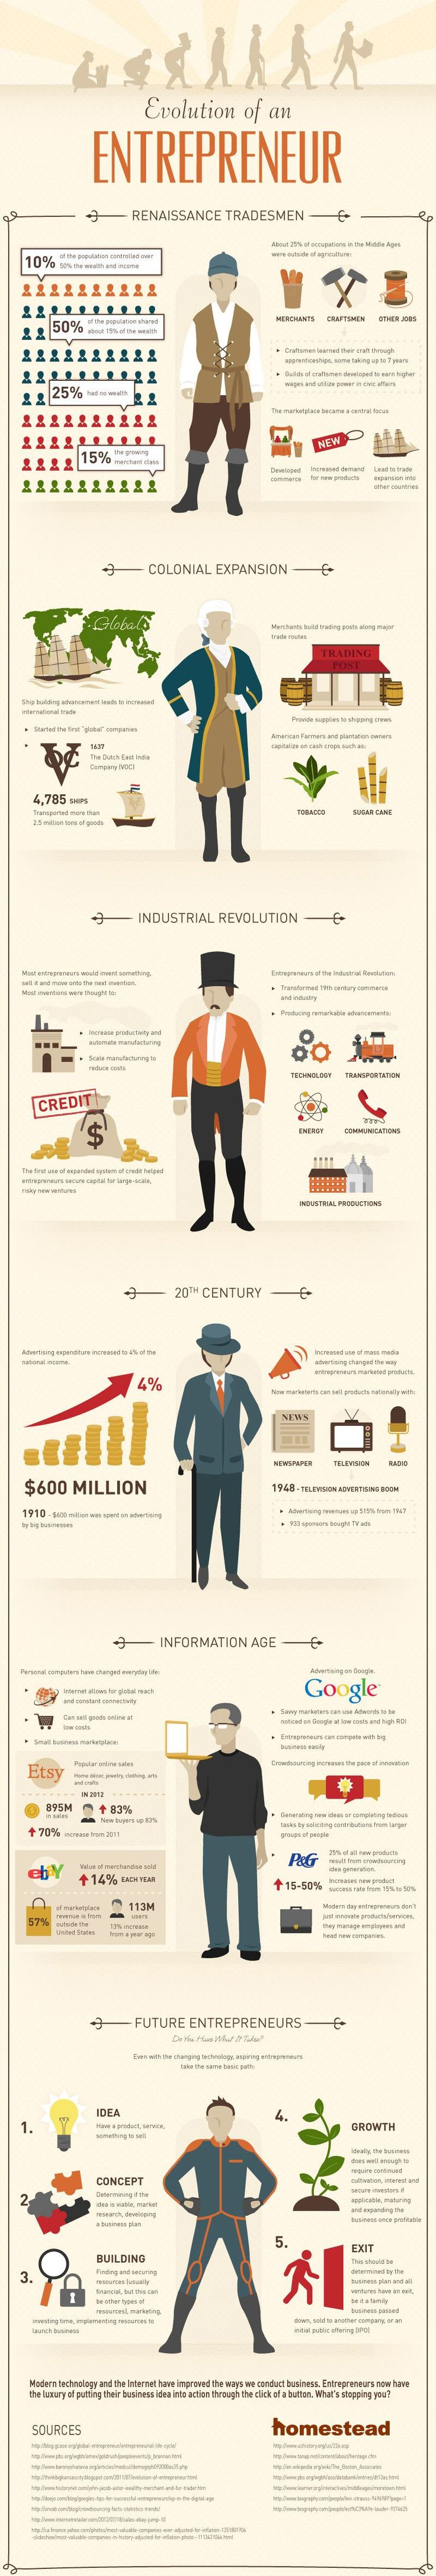 The Evolution of an Entrepreneur | Infographic